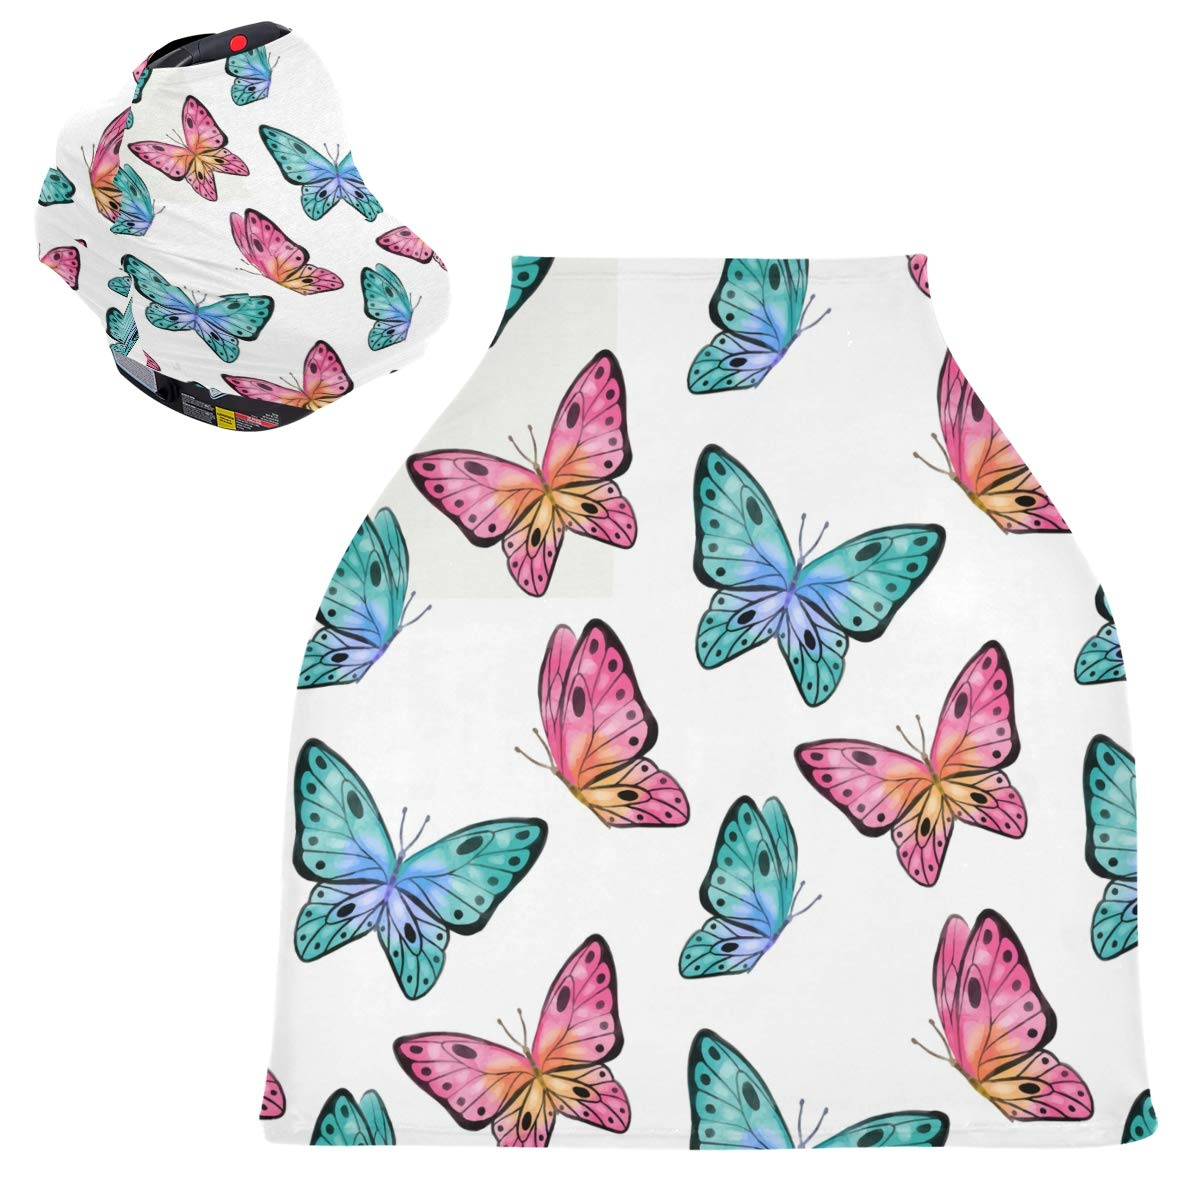 Stretchy Baby Car Seat Canopy - Colorful Butterfly Infant Stroller Cover Multi Use Carseat Canopy Nursing Cover for Breastfeeding Moms